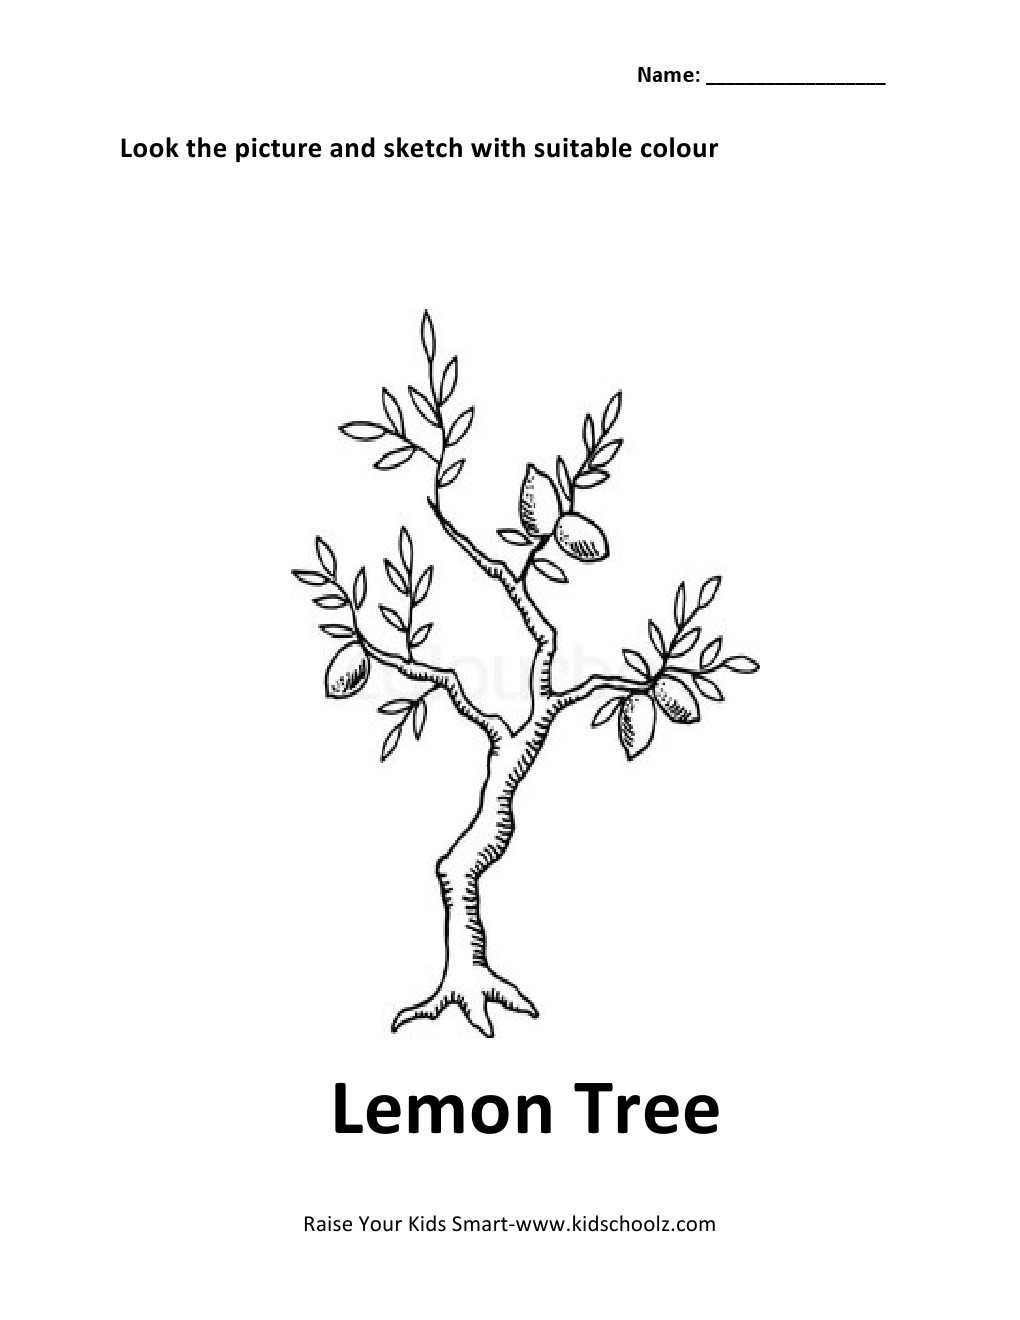 worksheet Lemon Tree Worksheet lemon tree drawing at getdrawings com free for personal use 1020x1320 colouring worksheet